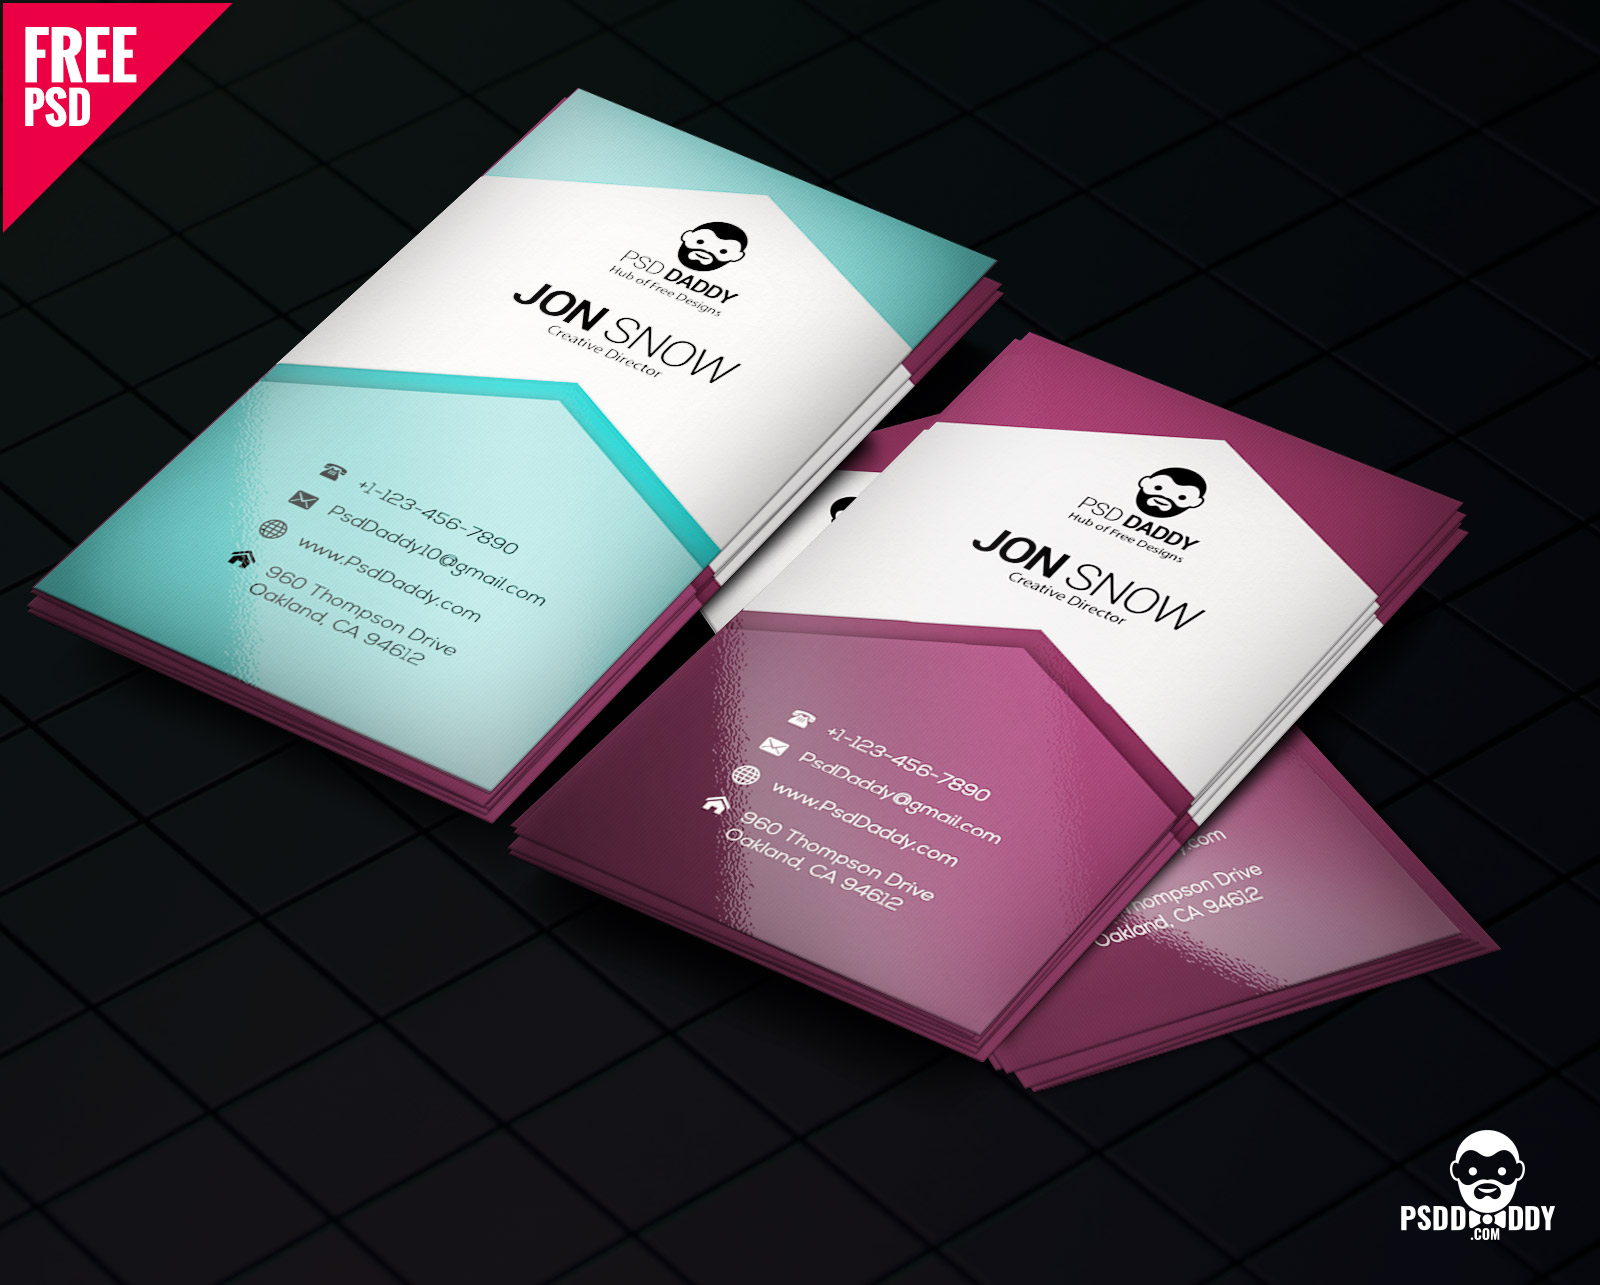 Downloadcreative business card psd free psddaddy business card design business card design templates business card dimensions business card holder colourmoves